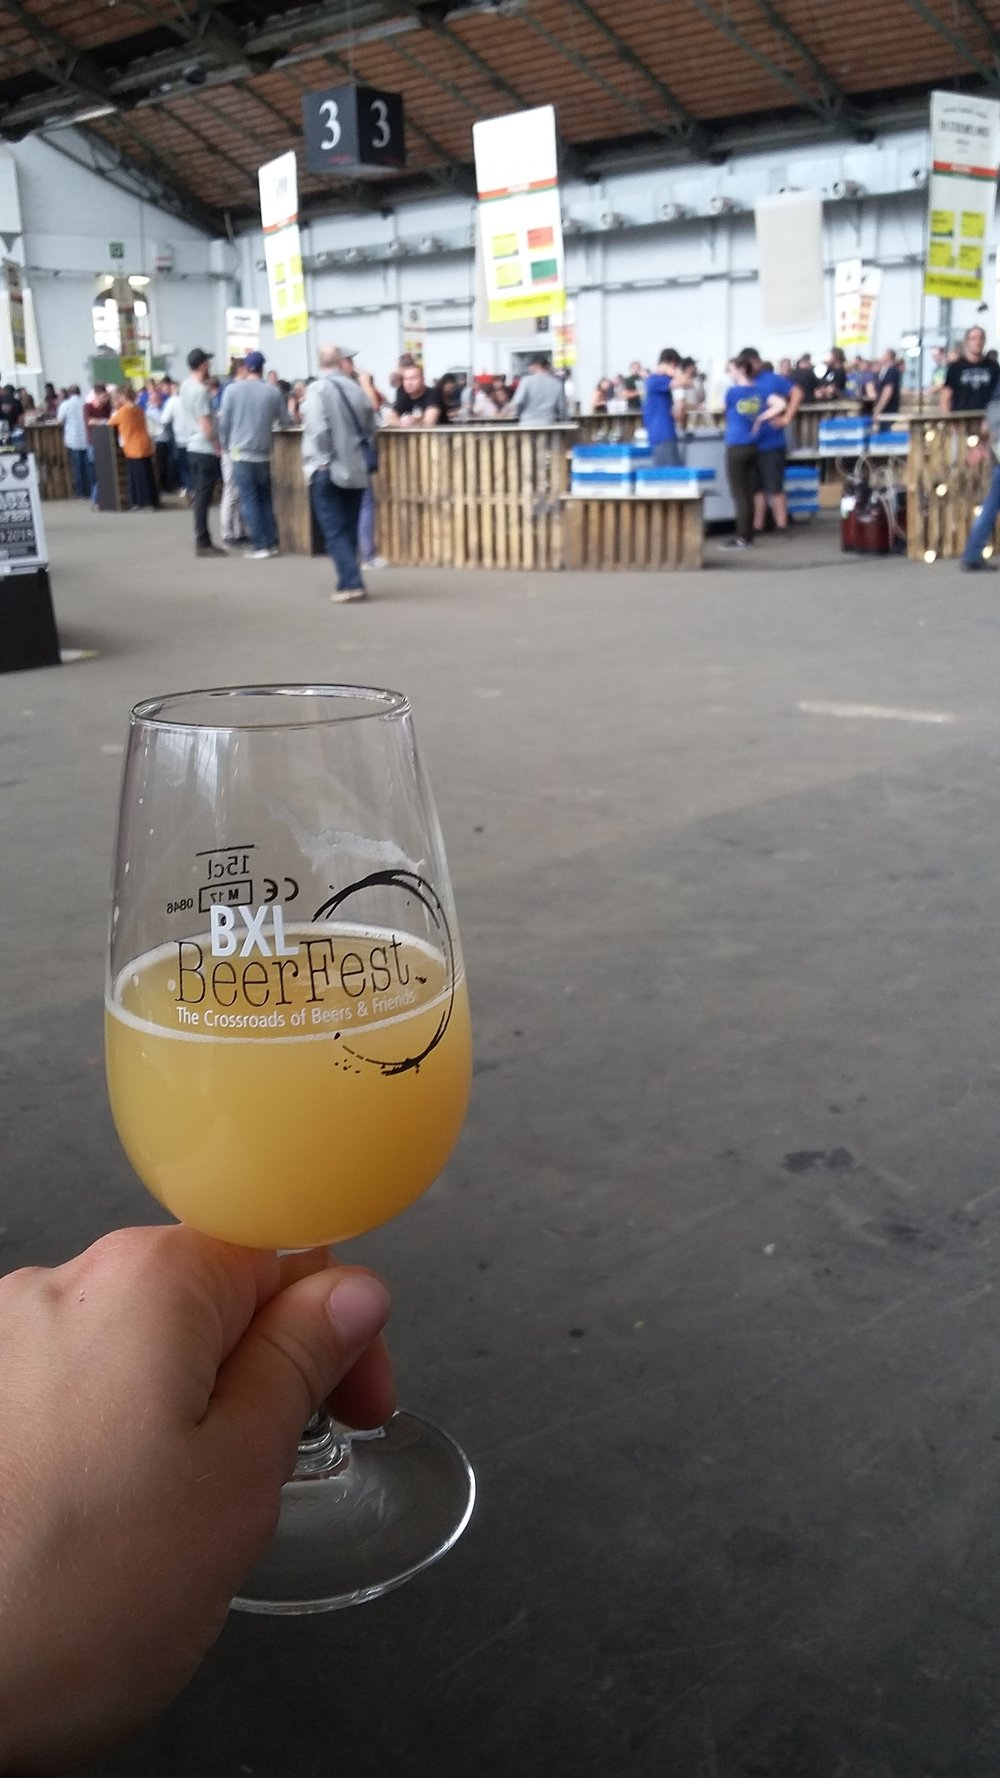 Beer fest in Brussels